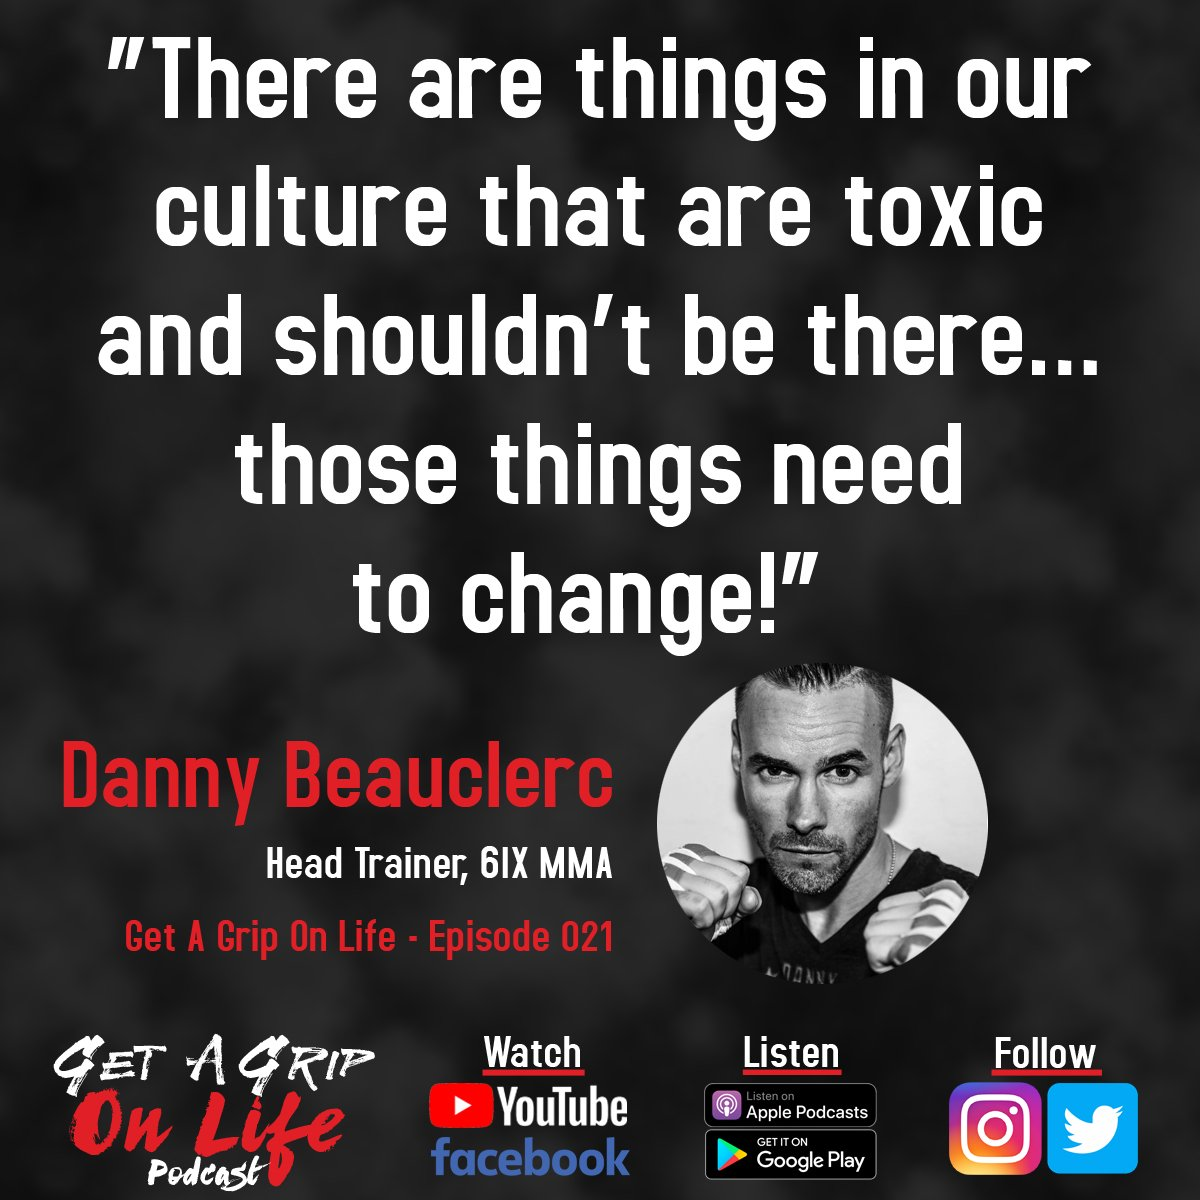 """There are things in our culture that are toxic and shouldn't be there... those things need to change."" - Danny Beauclerc 6IX MMA Head Trainer   Full Episode: https://getagriponlife.com/podcast/ep-021-6ix-mma-head-trainer-danny-beauclerc …   #Podcast #MMA #MMAPodcast #6IXMMA #The6IX #Talking6IX #Toronto"